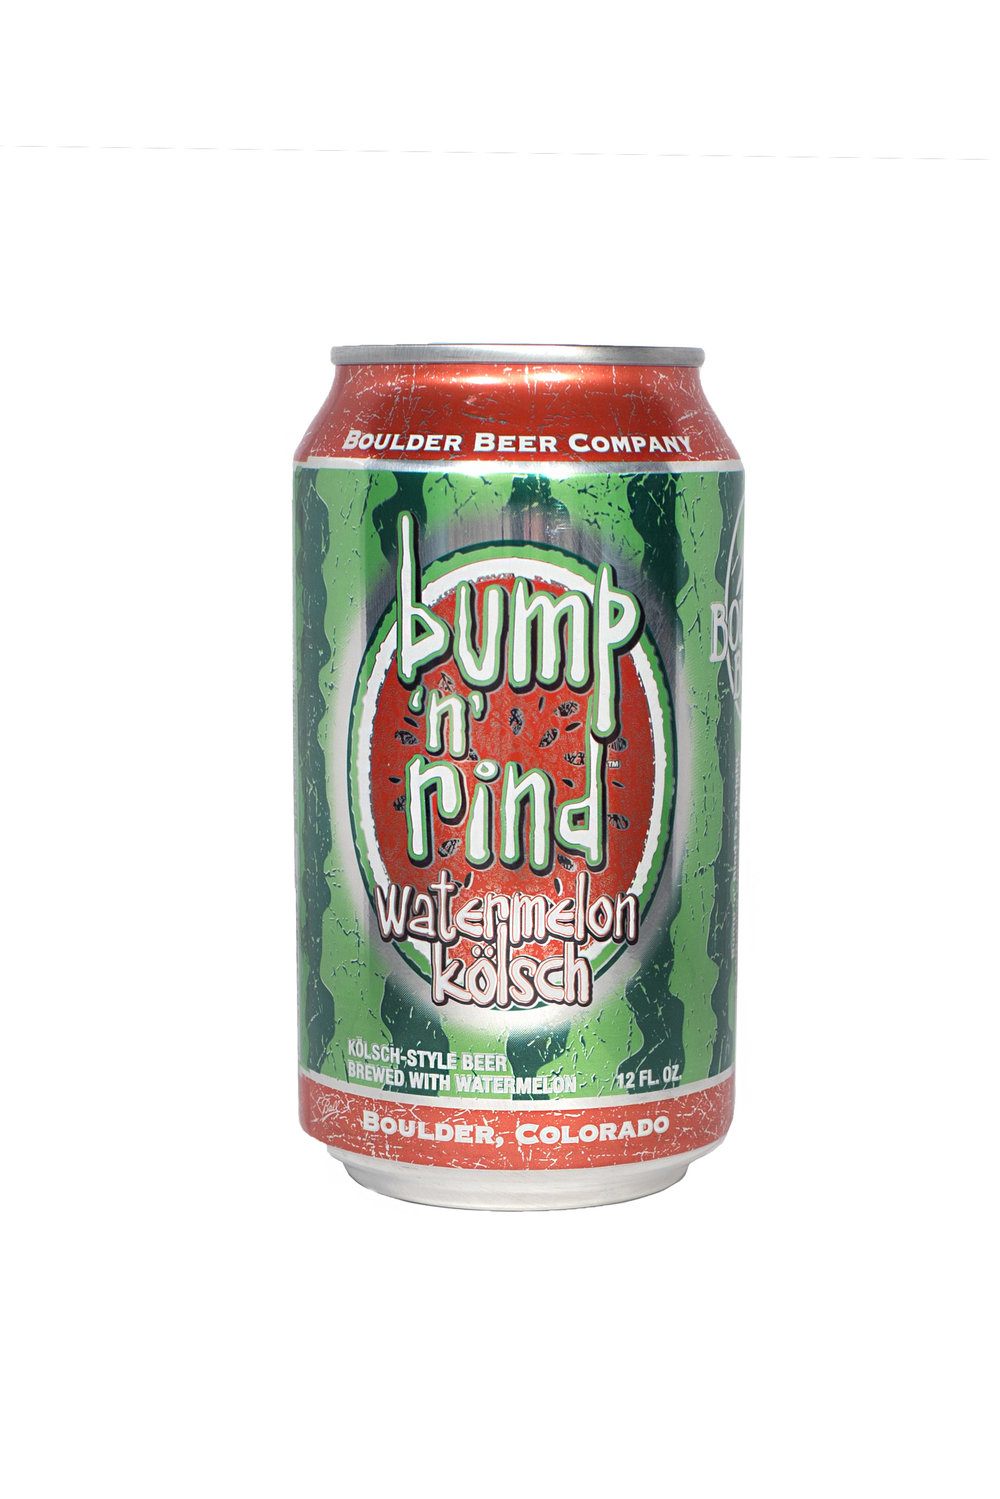 Bump single can.jpg